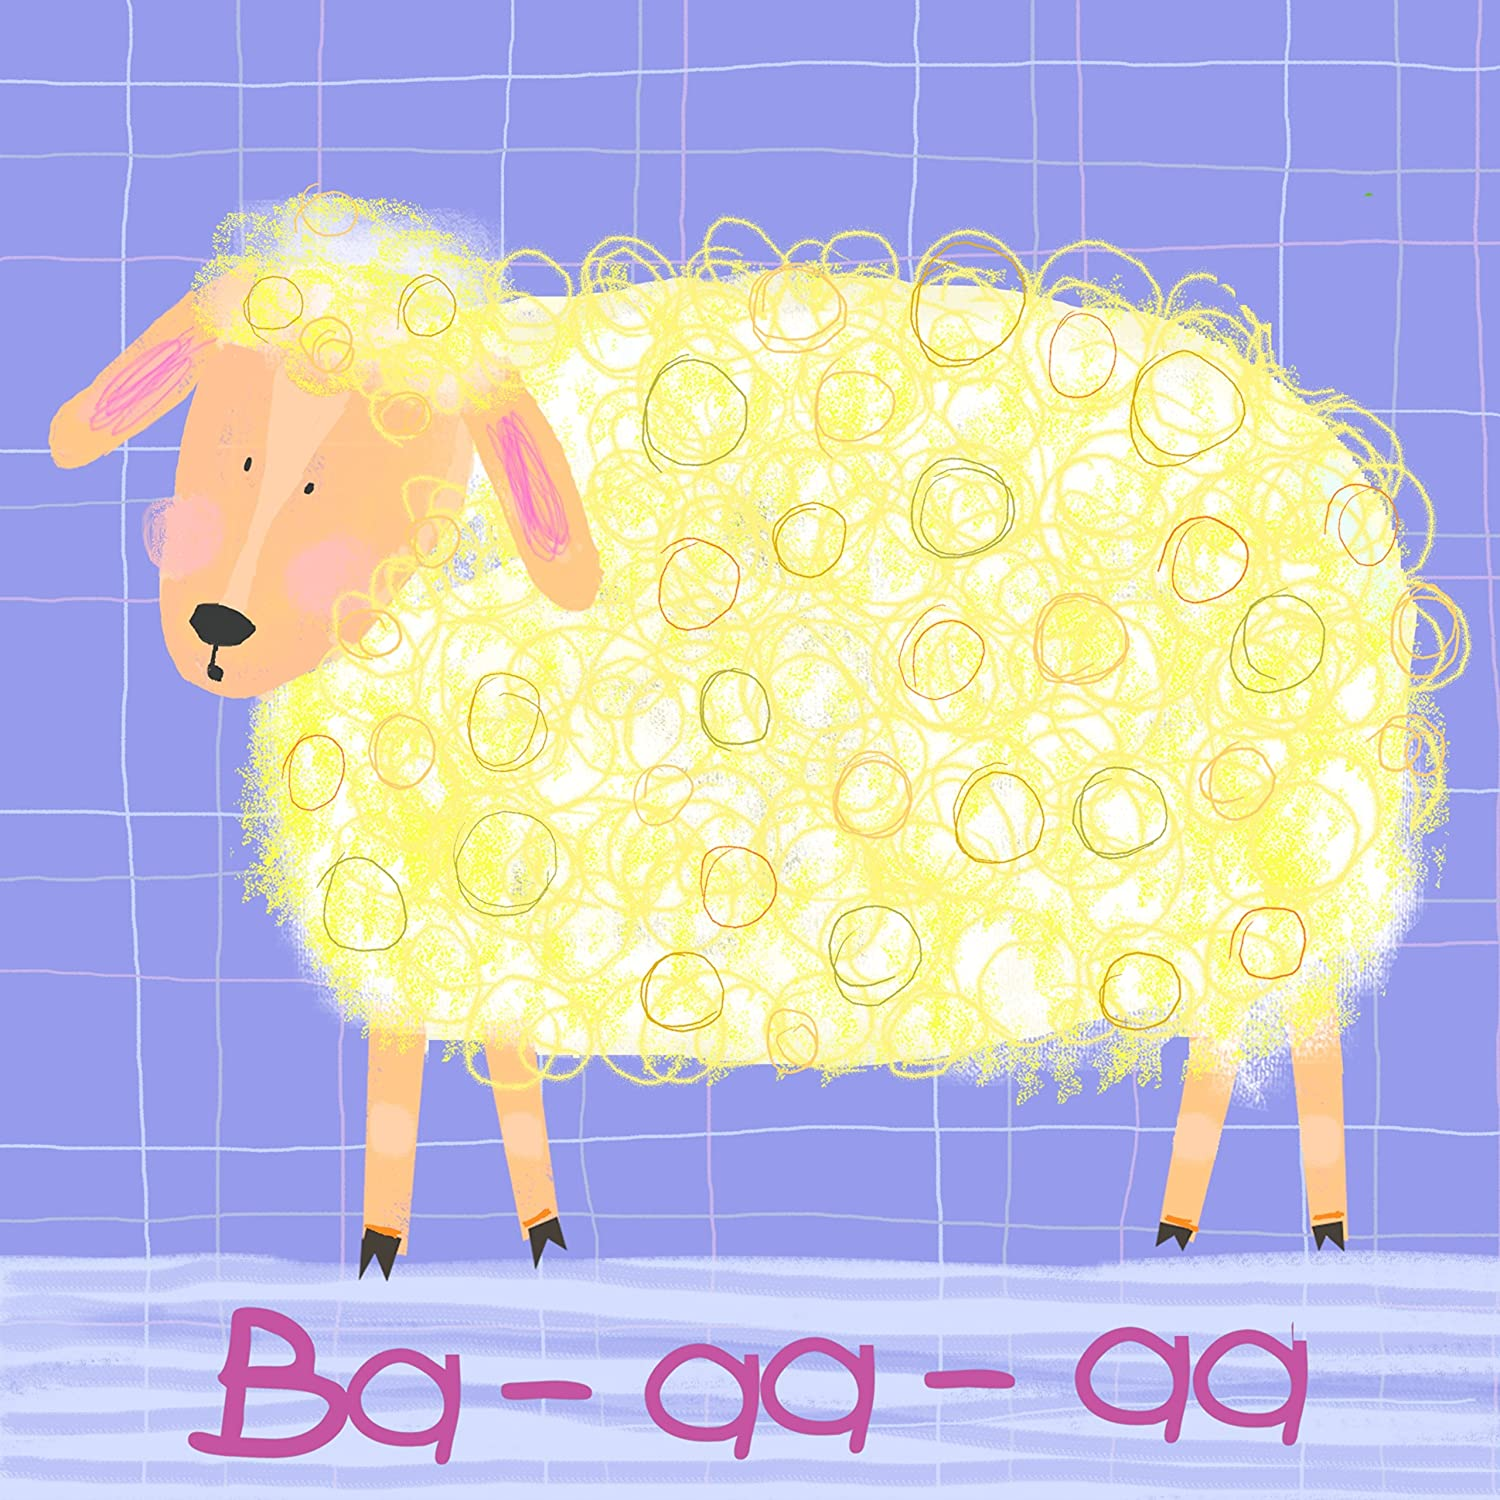 Amazon.com: Oopsy Daisy Sheep Says Ba-aa-aa Stretched Canvas Wall ...